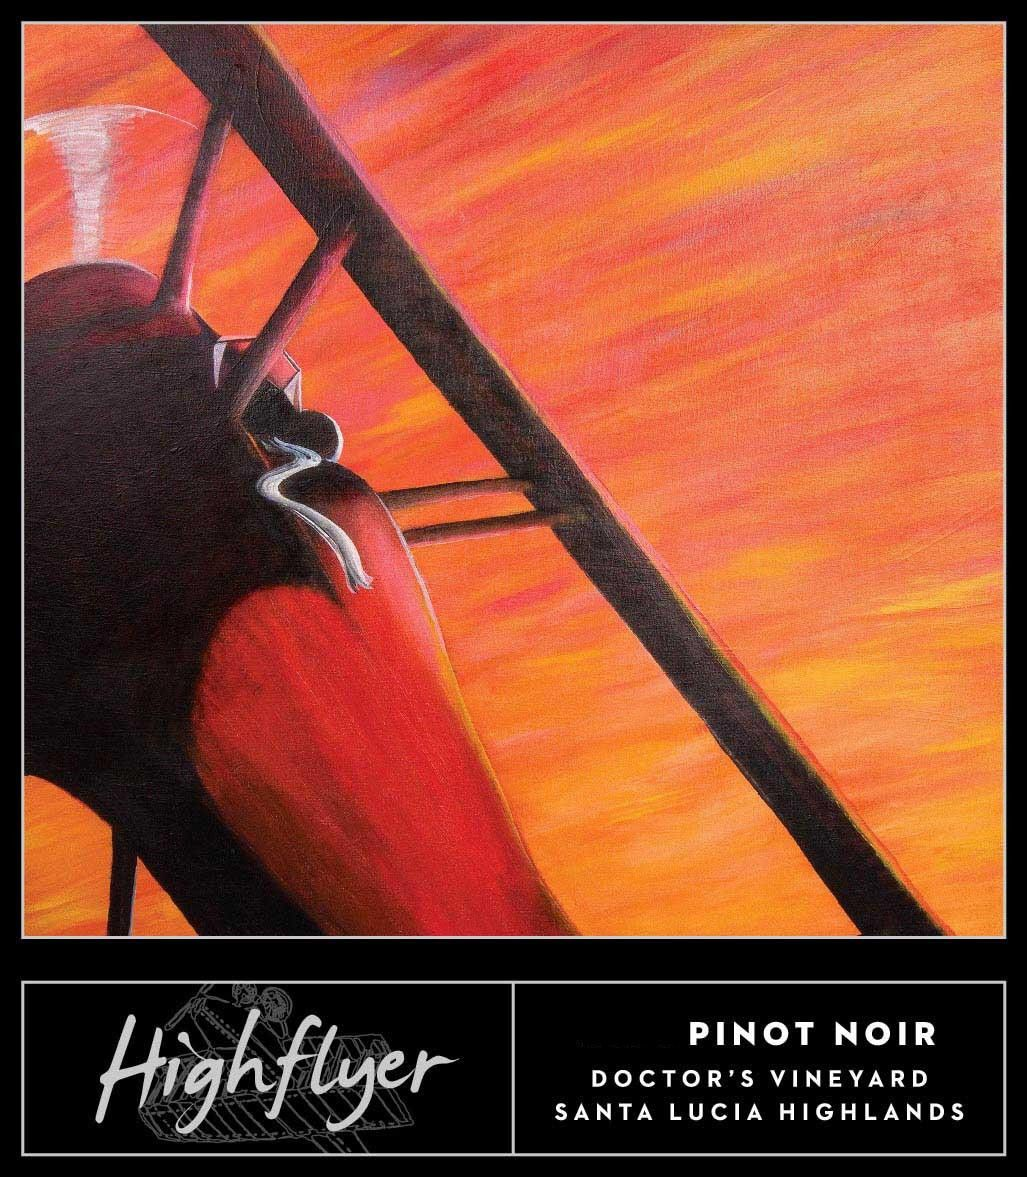 High Flyer Doctor's Vineyard Pinot Noir 2012 Front Label